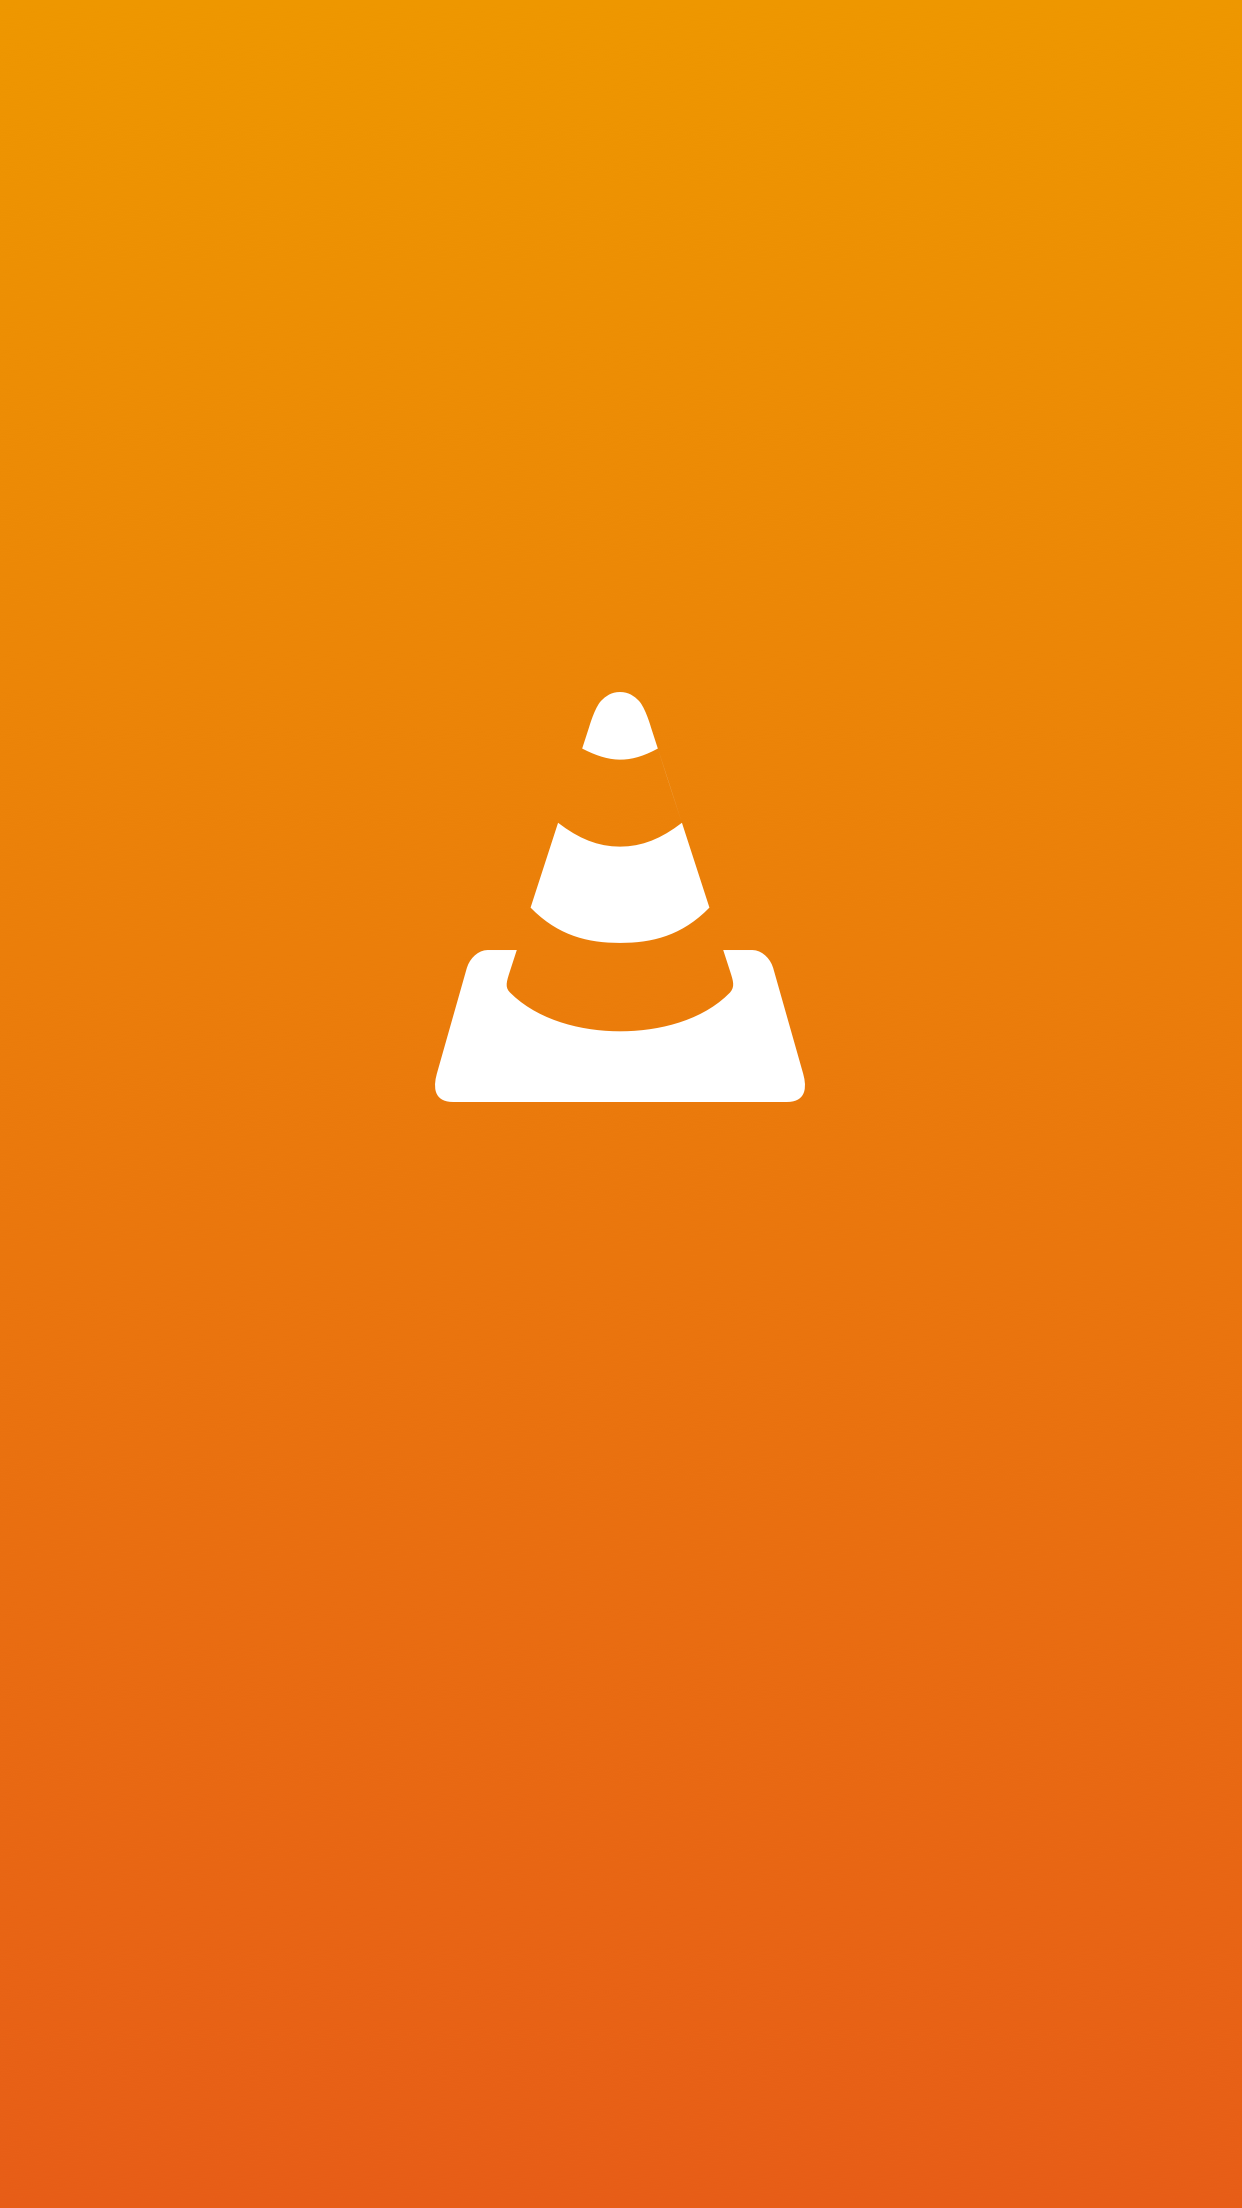 "vlc-ios/Images.xcassets/LaunchImage.launchimage/5.5""@1x.png"